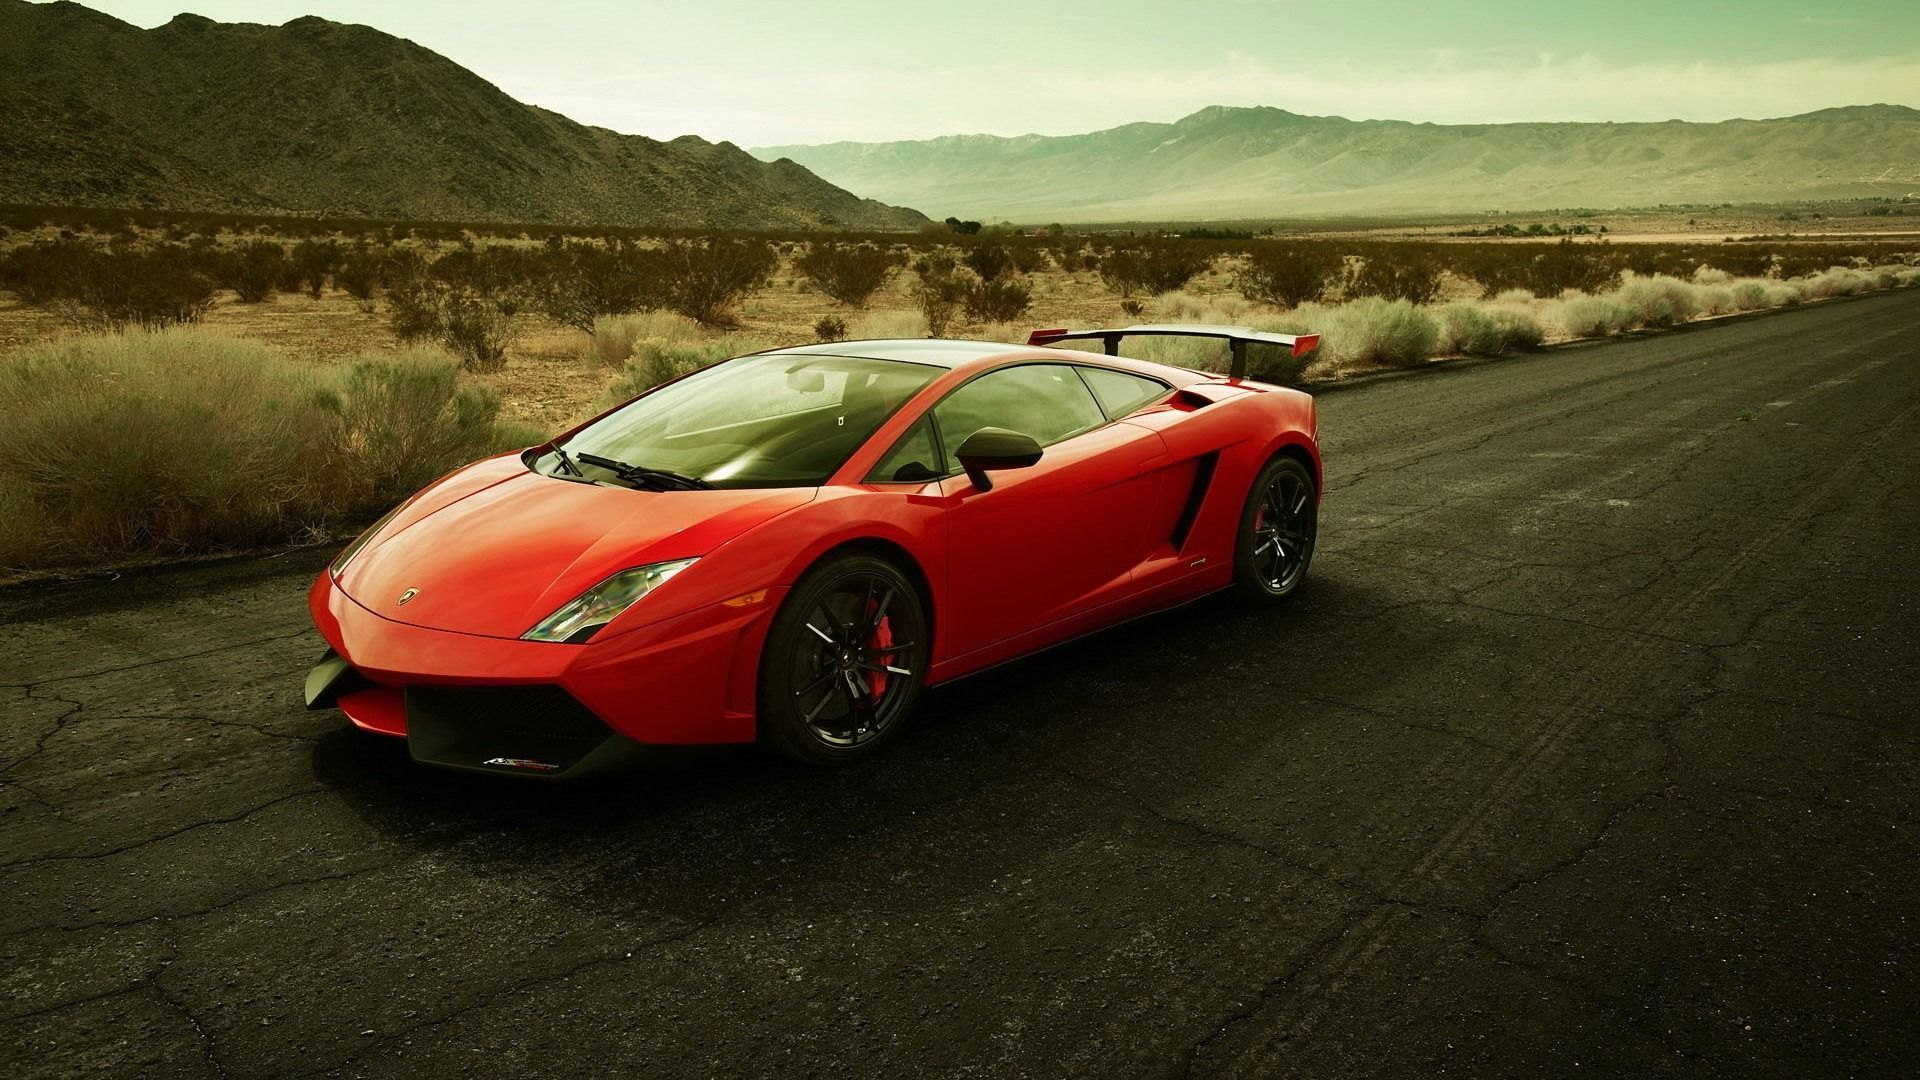 Bon Hd Lamborghini Gallardo Wallpapers | HD Wallpapers | Pinterest | Lamborghini  Gallardo, Lamborghini And Hd Wallpaper